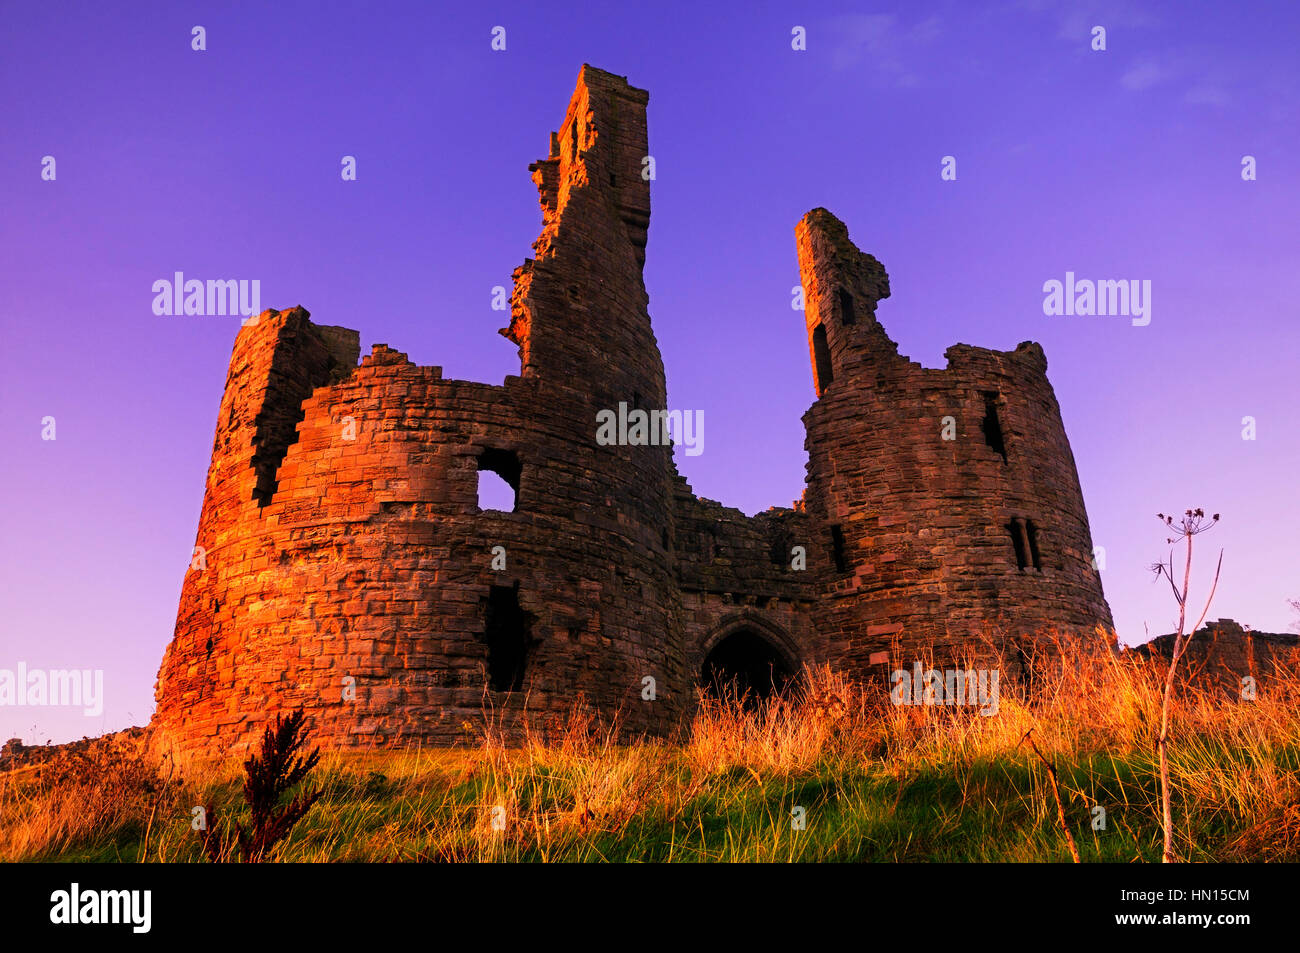 Dunstanburgh Castle, Northumberland, England, UK - Stock Image